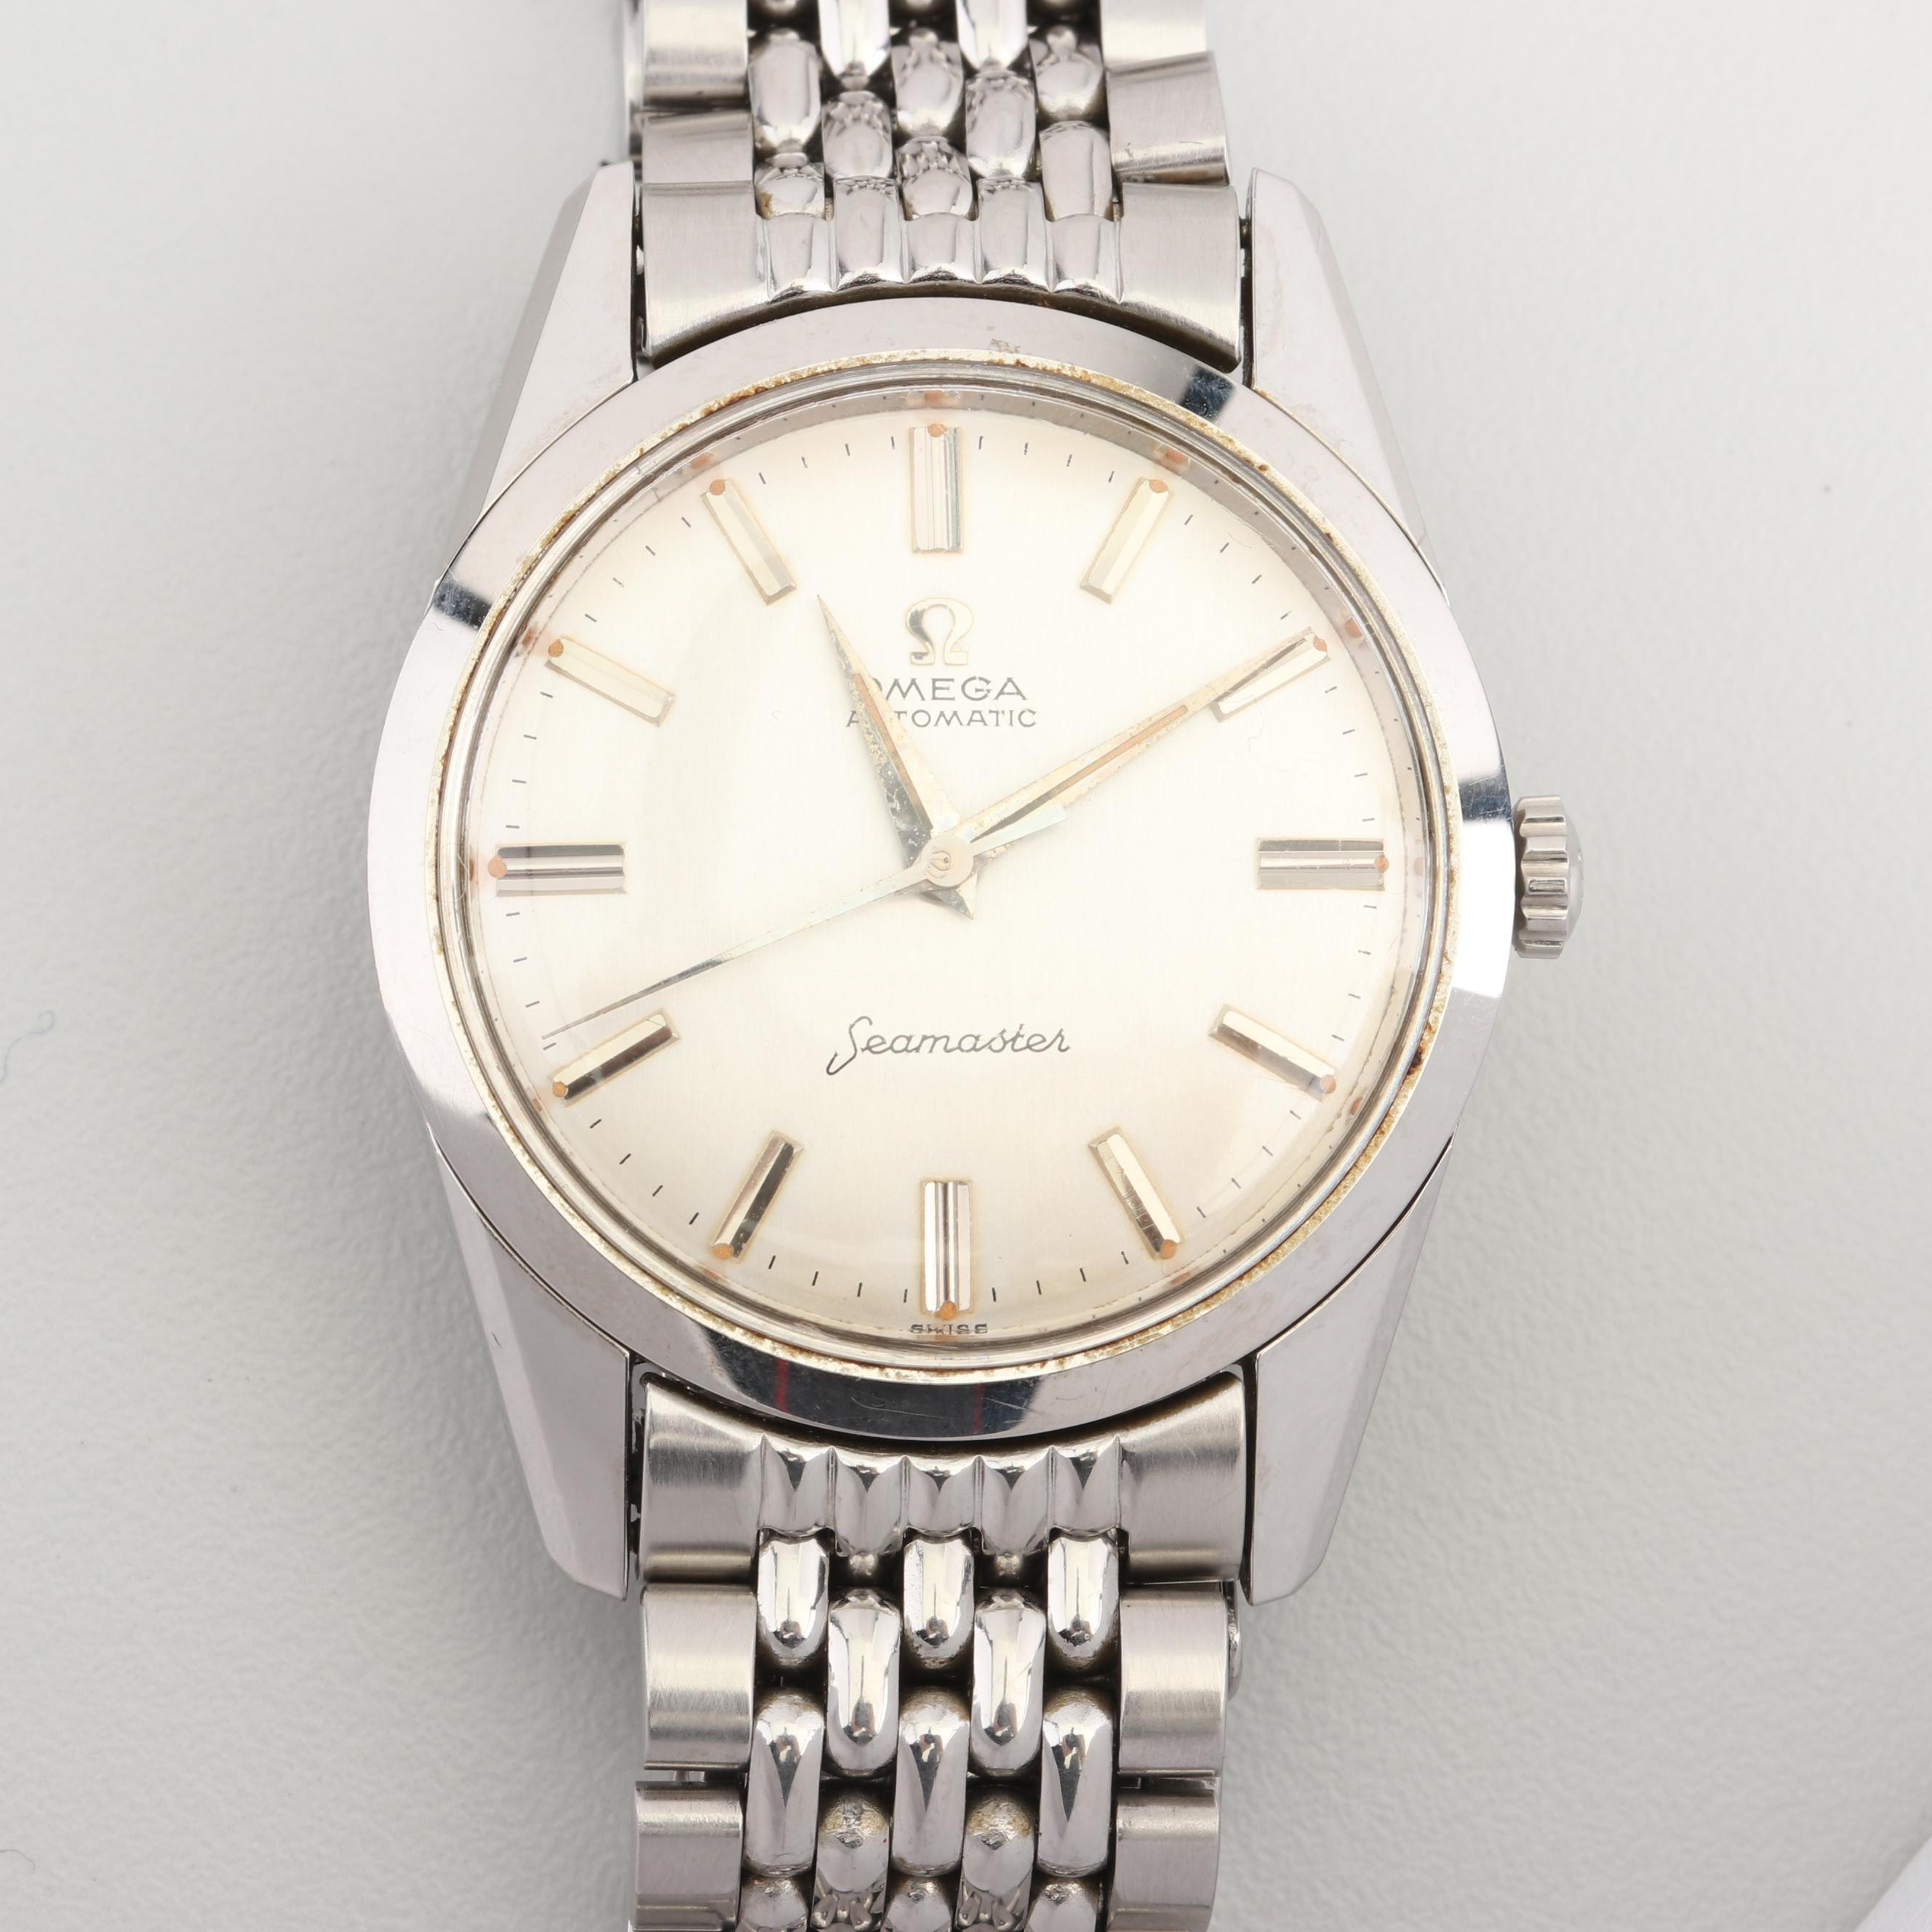 Vintage Omega Automatic Seamaster Stainless Steel Wristwatch